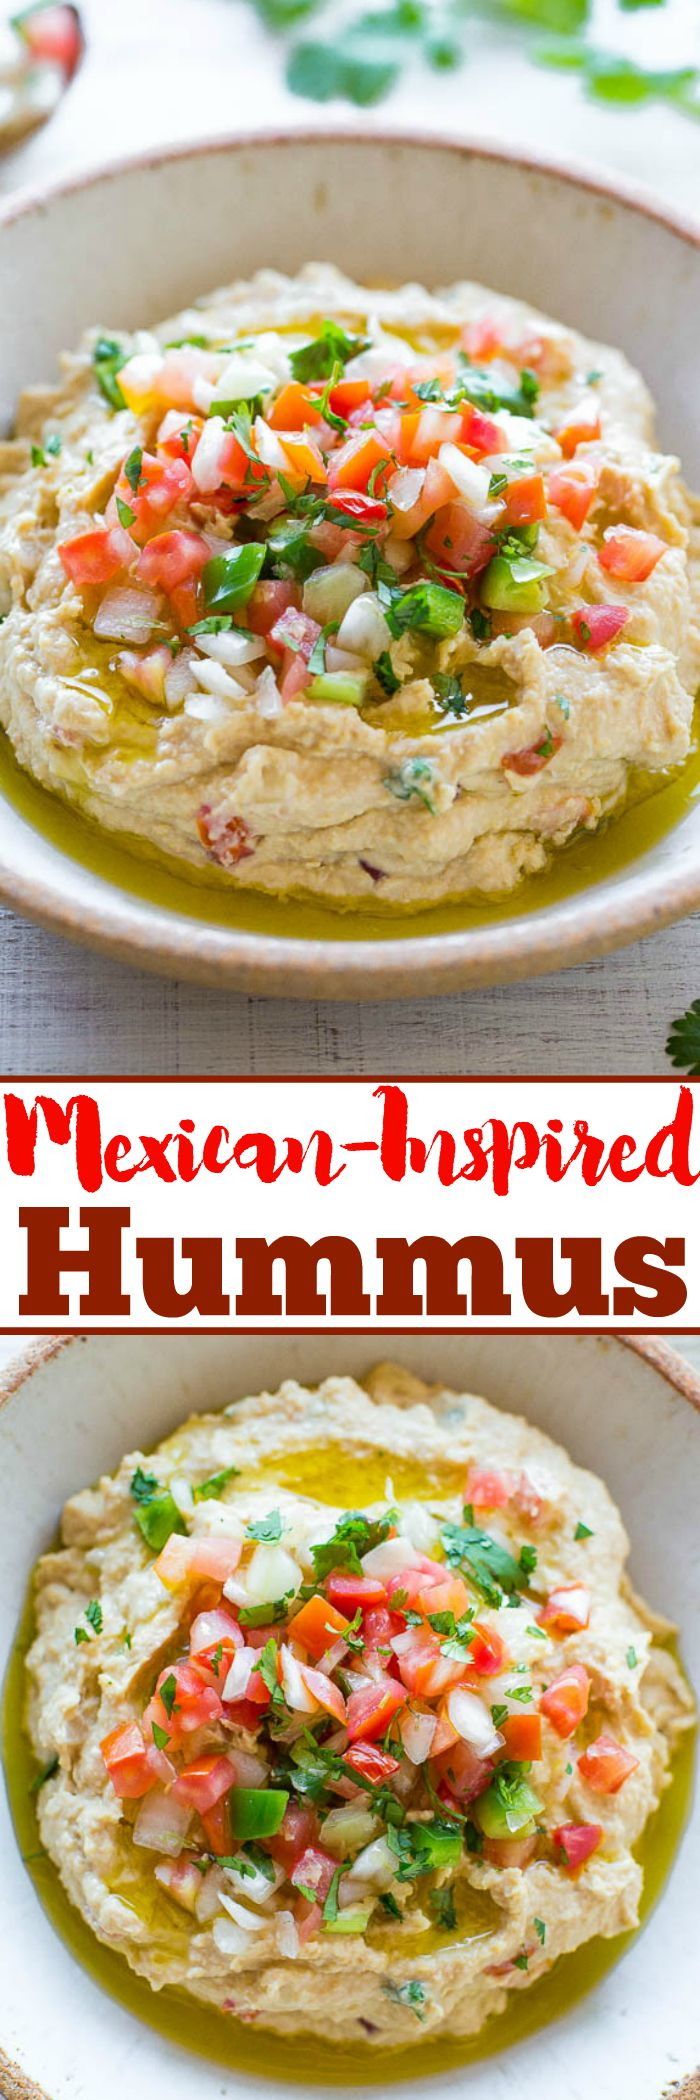 Easy Mexican-Inspired Hummus - Jazz up classic hummus with pico de gallo, cilantro, and you won't be able to stop digging into it with tortilla chips!! Easy, healthy, ready in 5 minutes, and a perfect snack that everyone loves!! Great starter to your dinner!